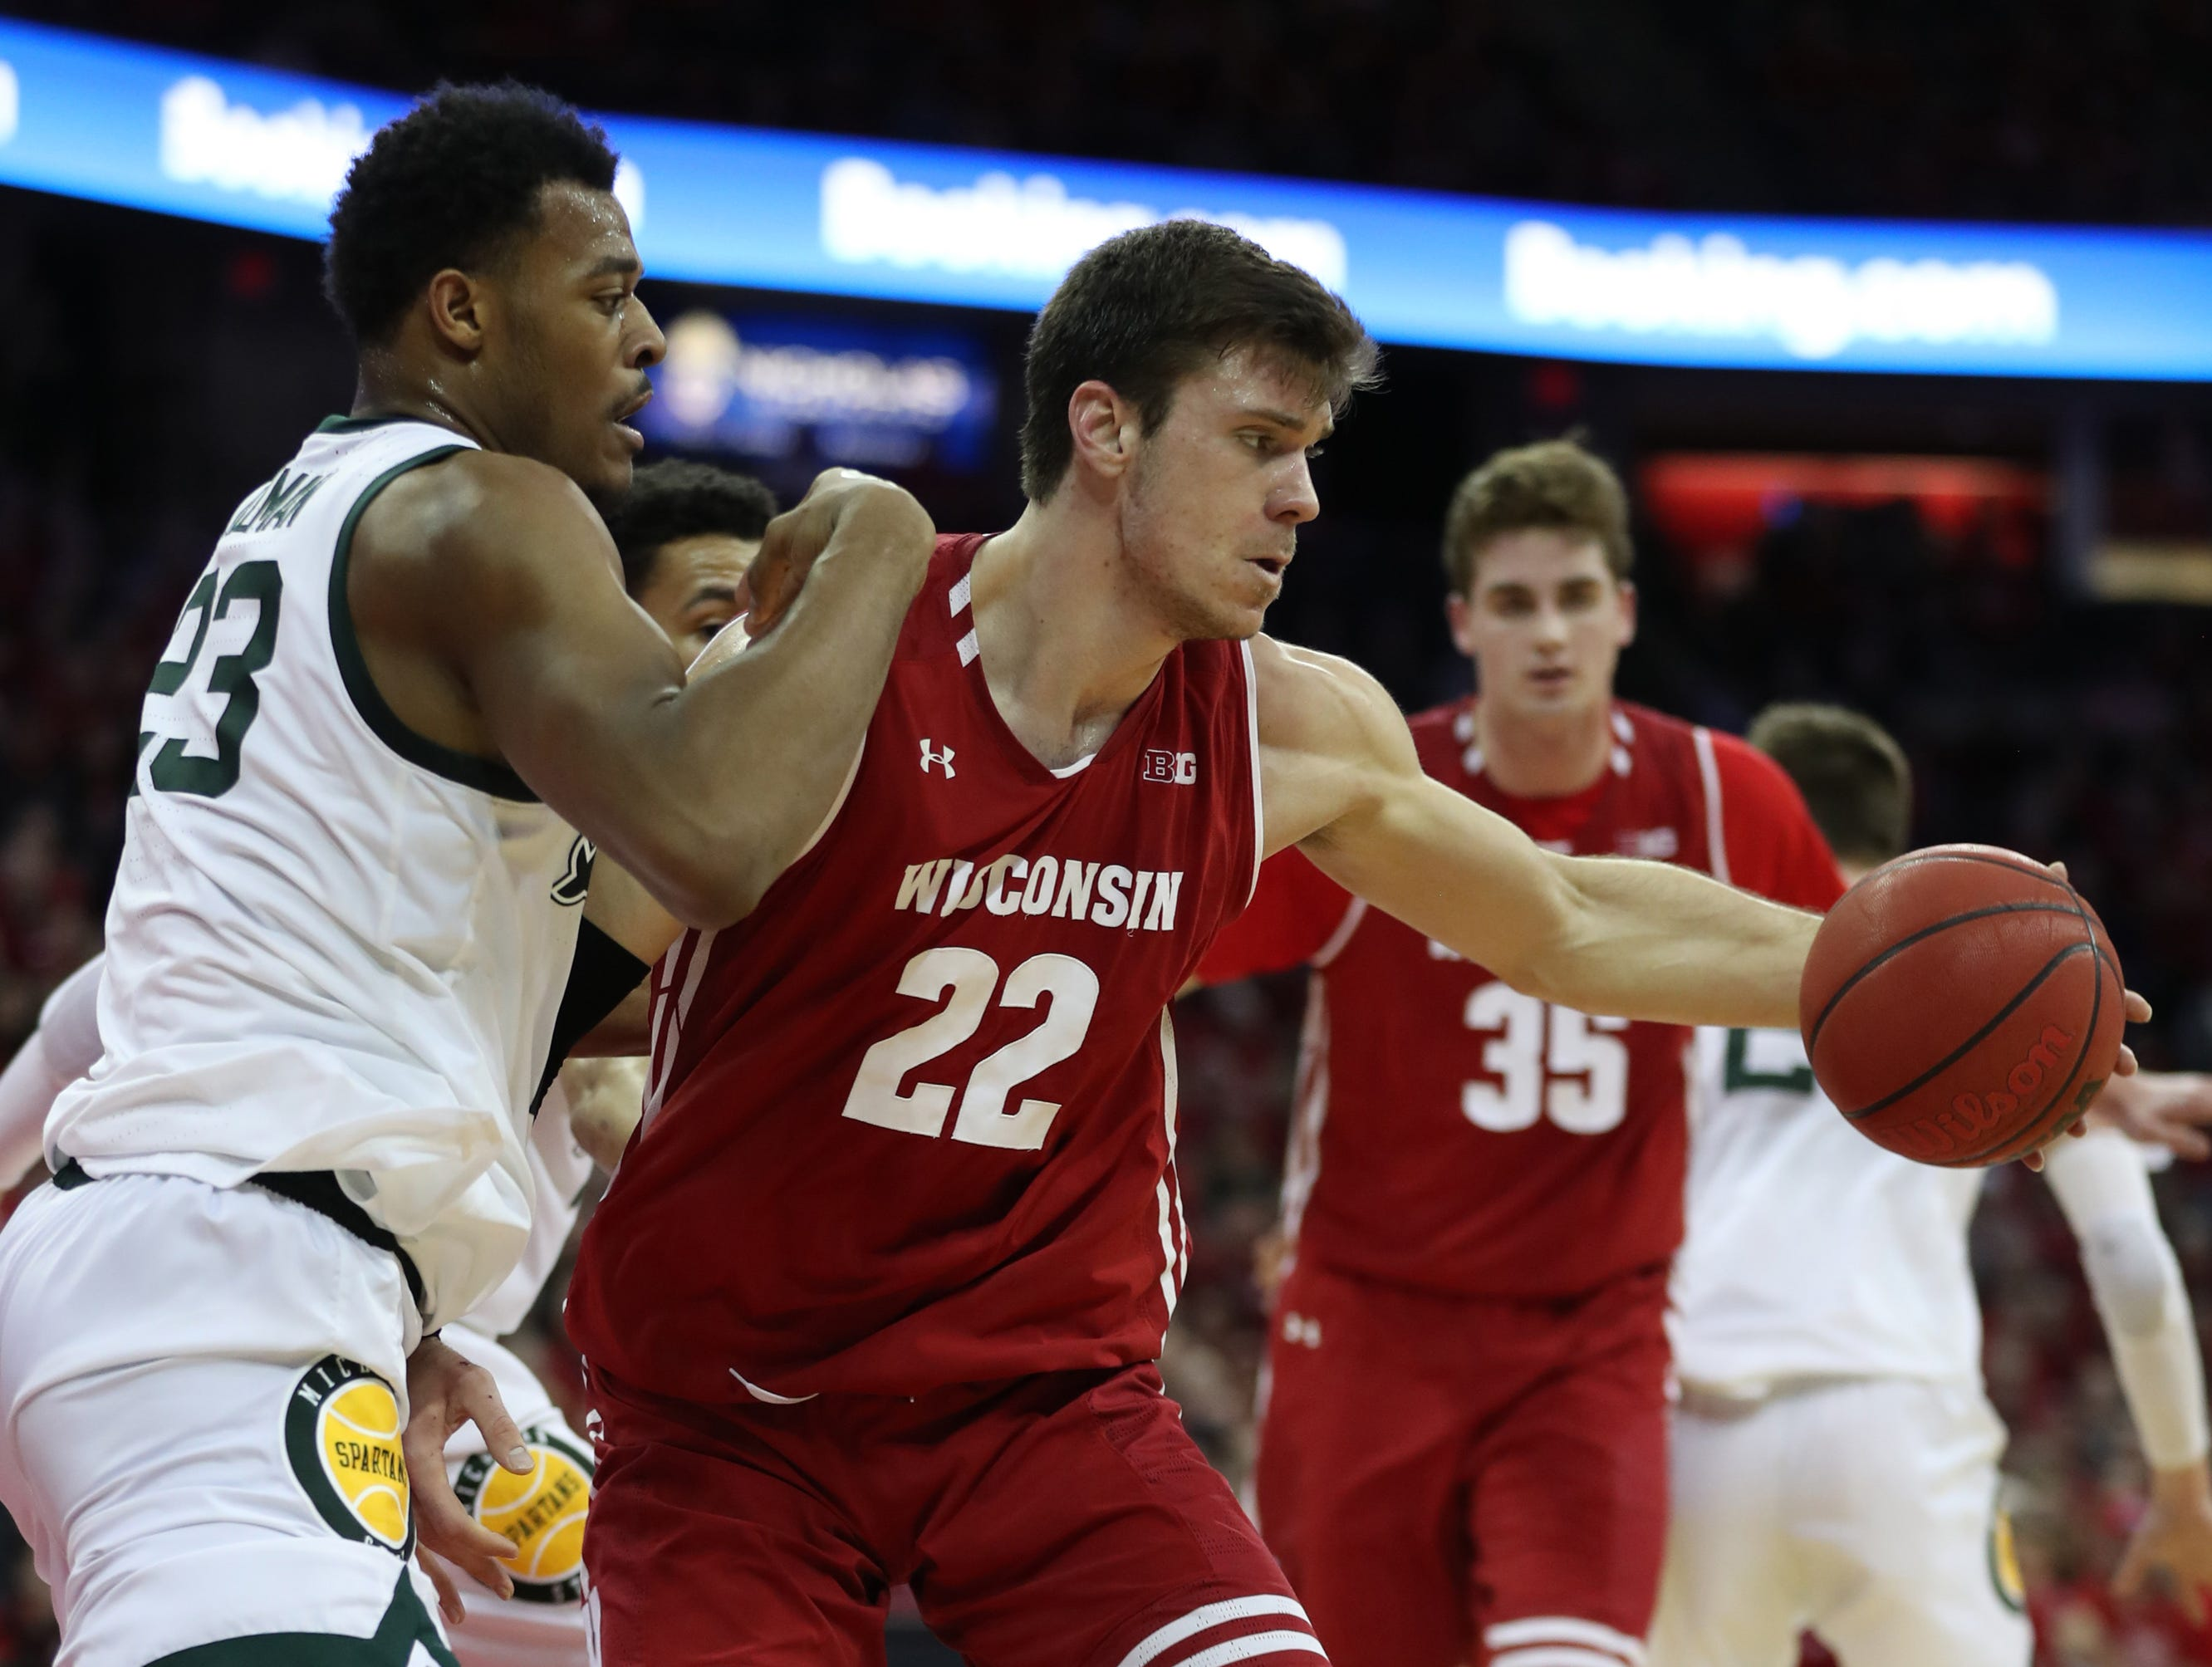 Wisconsin Badgers forward Ethan Happ (22) reaches for the ball as Michigan State Spartans forward Xavier Tillman (23) defends during the second half at the Kohl Center.